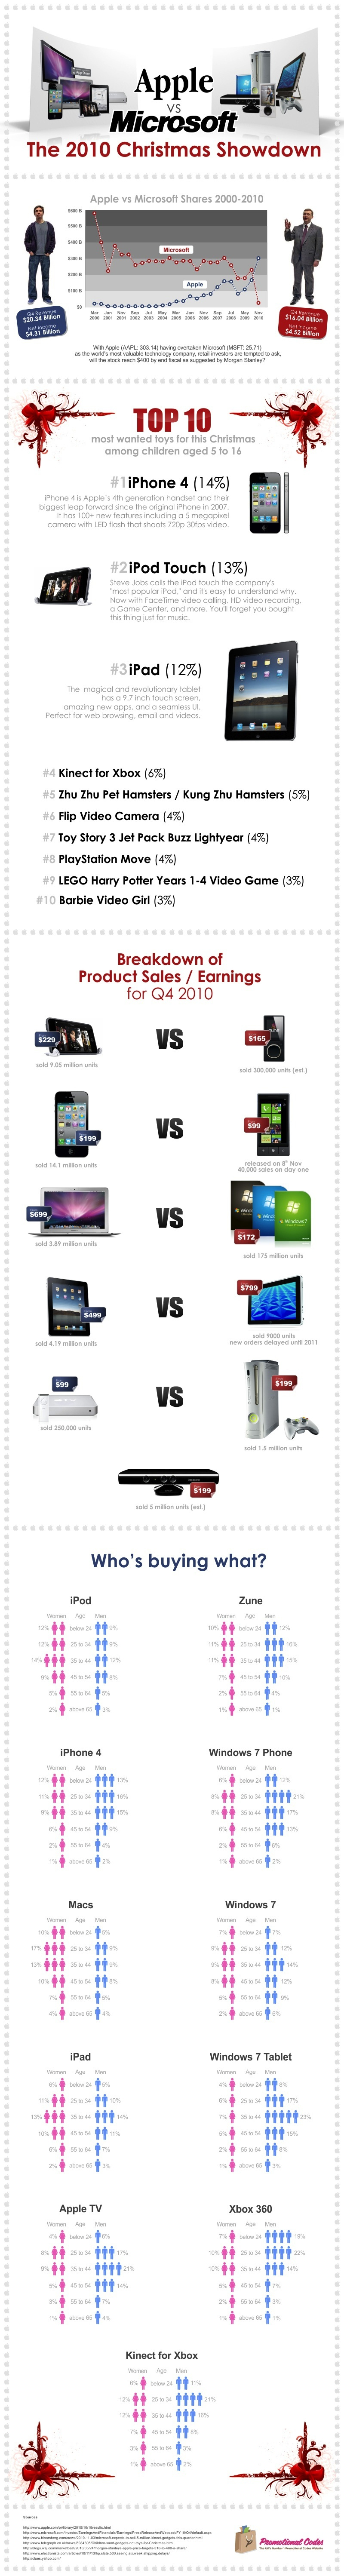 Apple vs Microsoft 2010 Christmas Sales Showdown